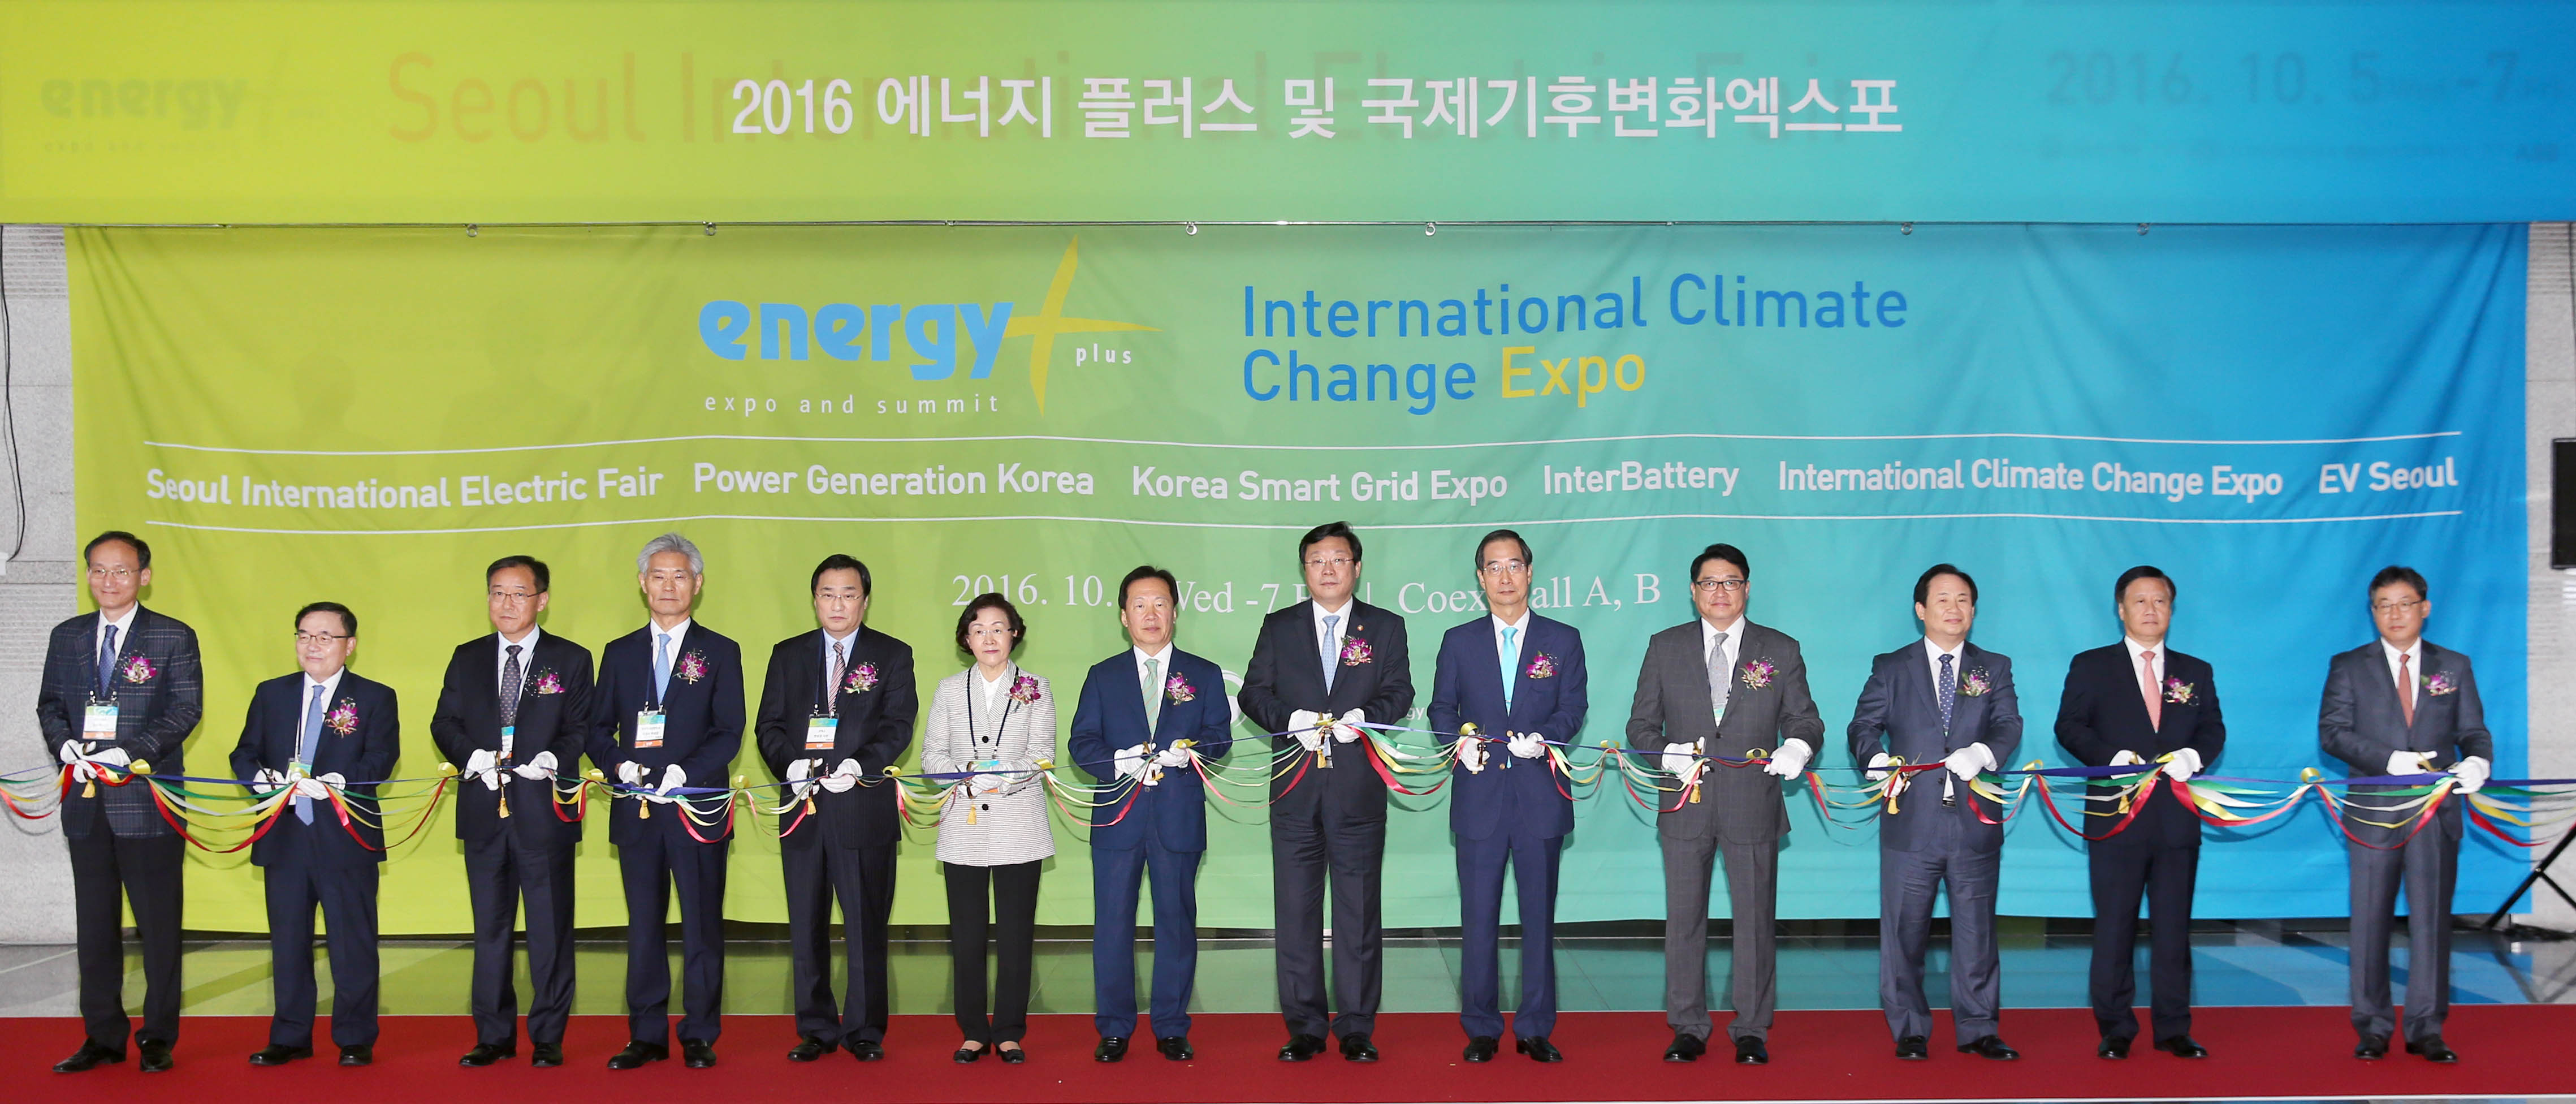 Minister Joo attends opening ceremony of 'Energy Plus 2016'